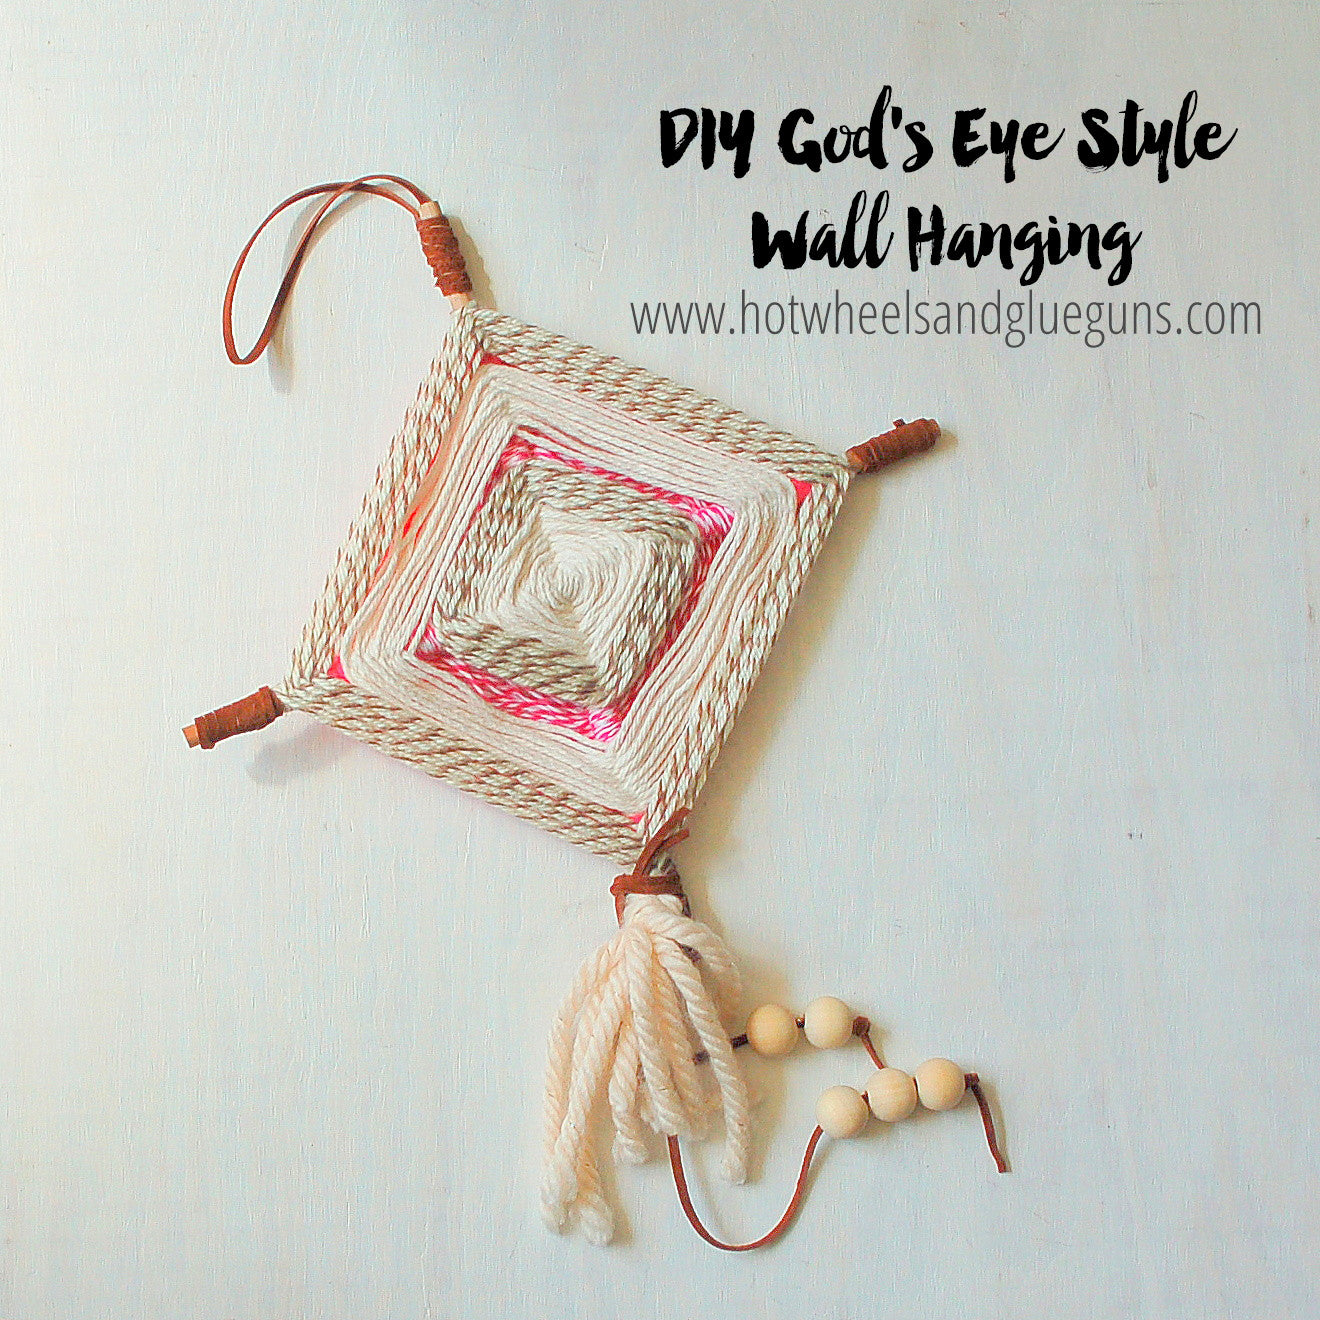 DIY God's Eyes Style Wall Hanging